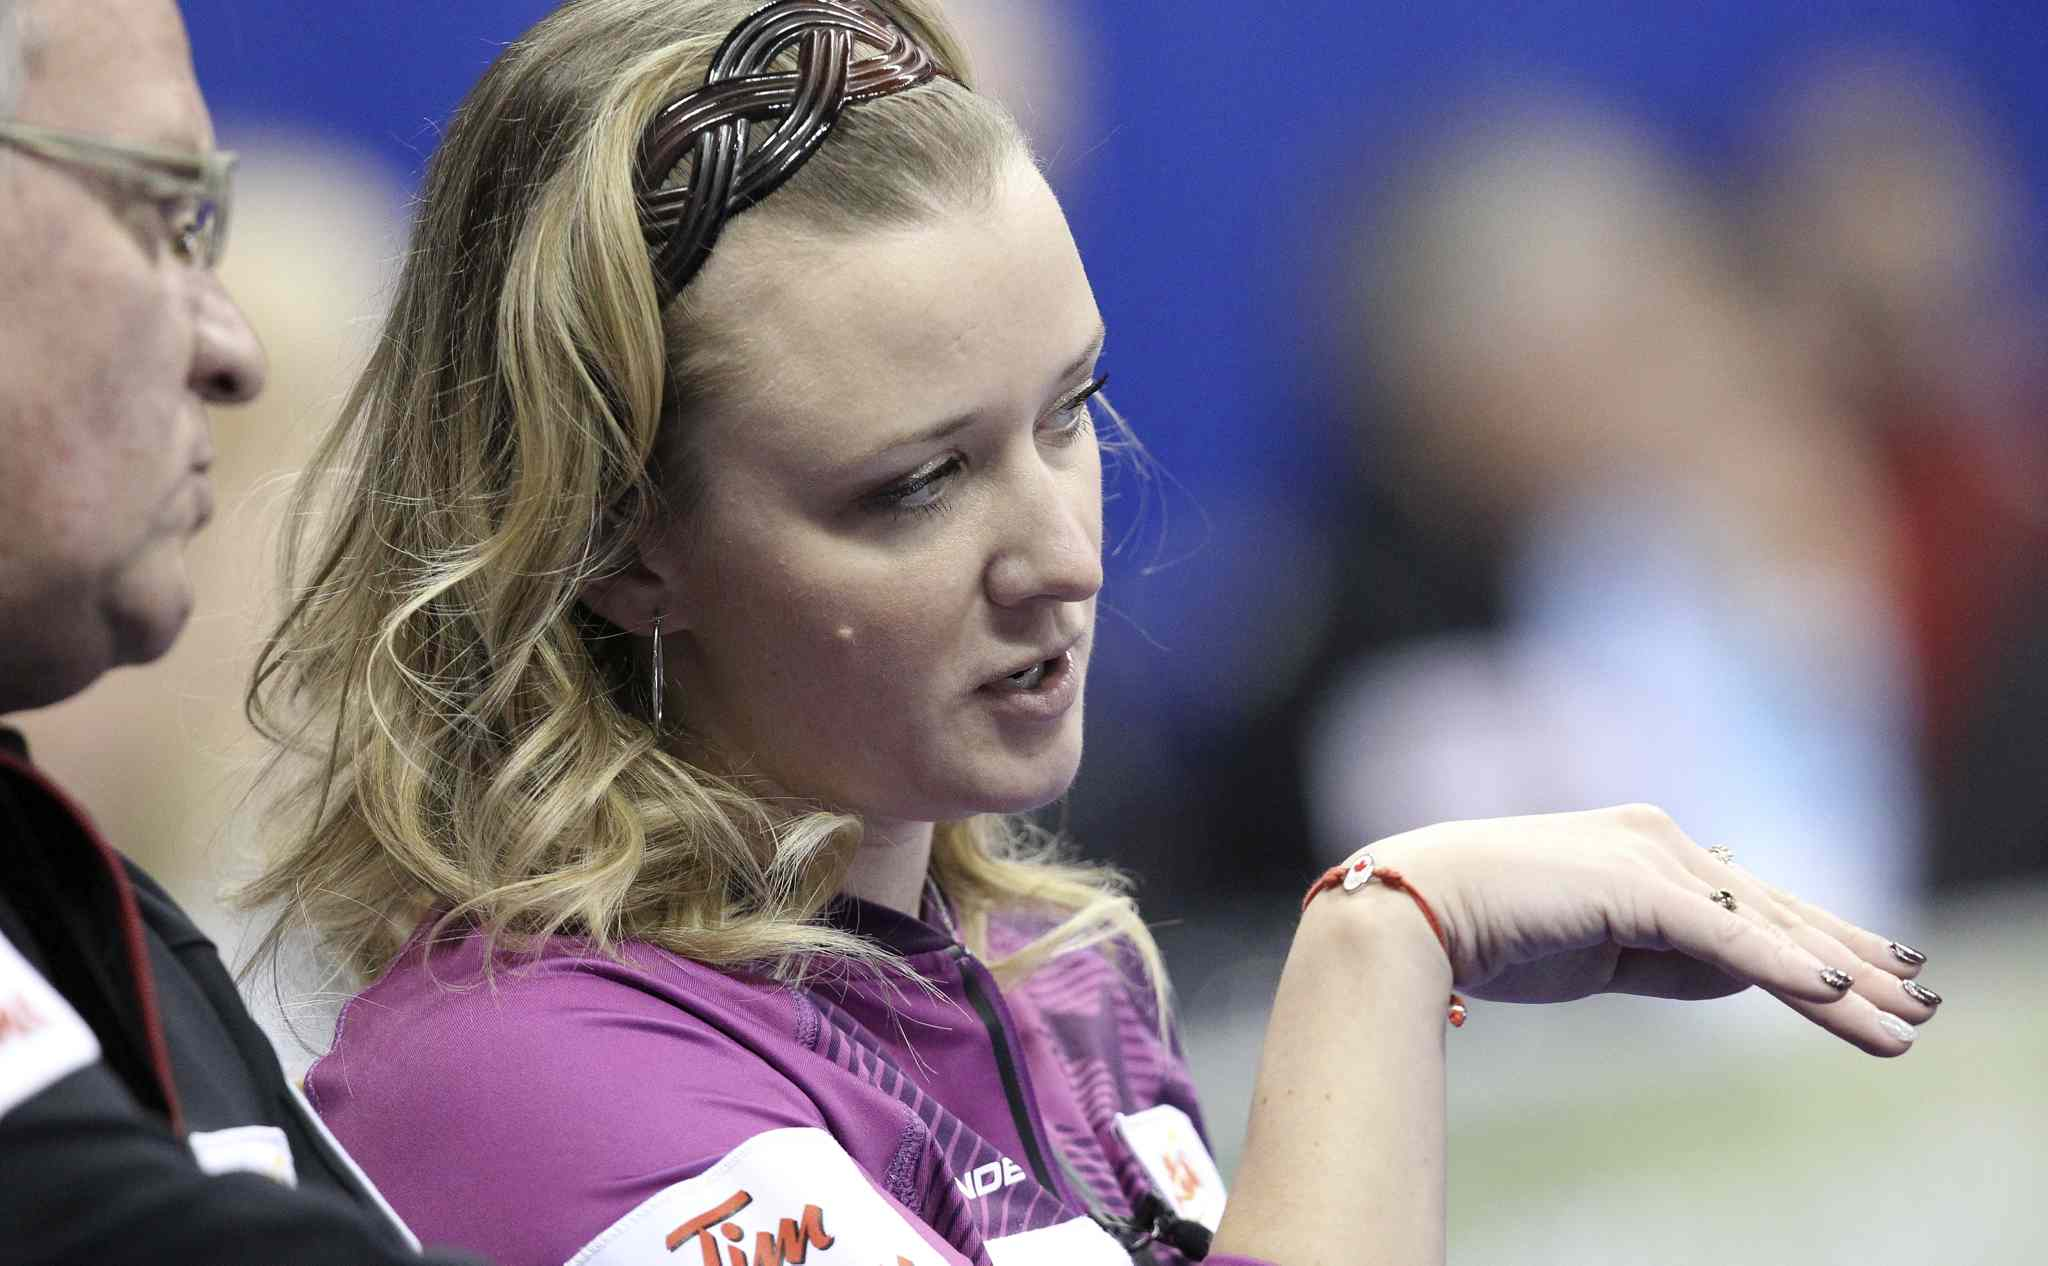 It started badly for Winnipeg's Chelsea Carey before the bonspiel even began.